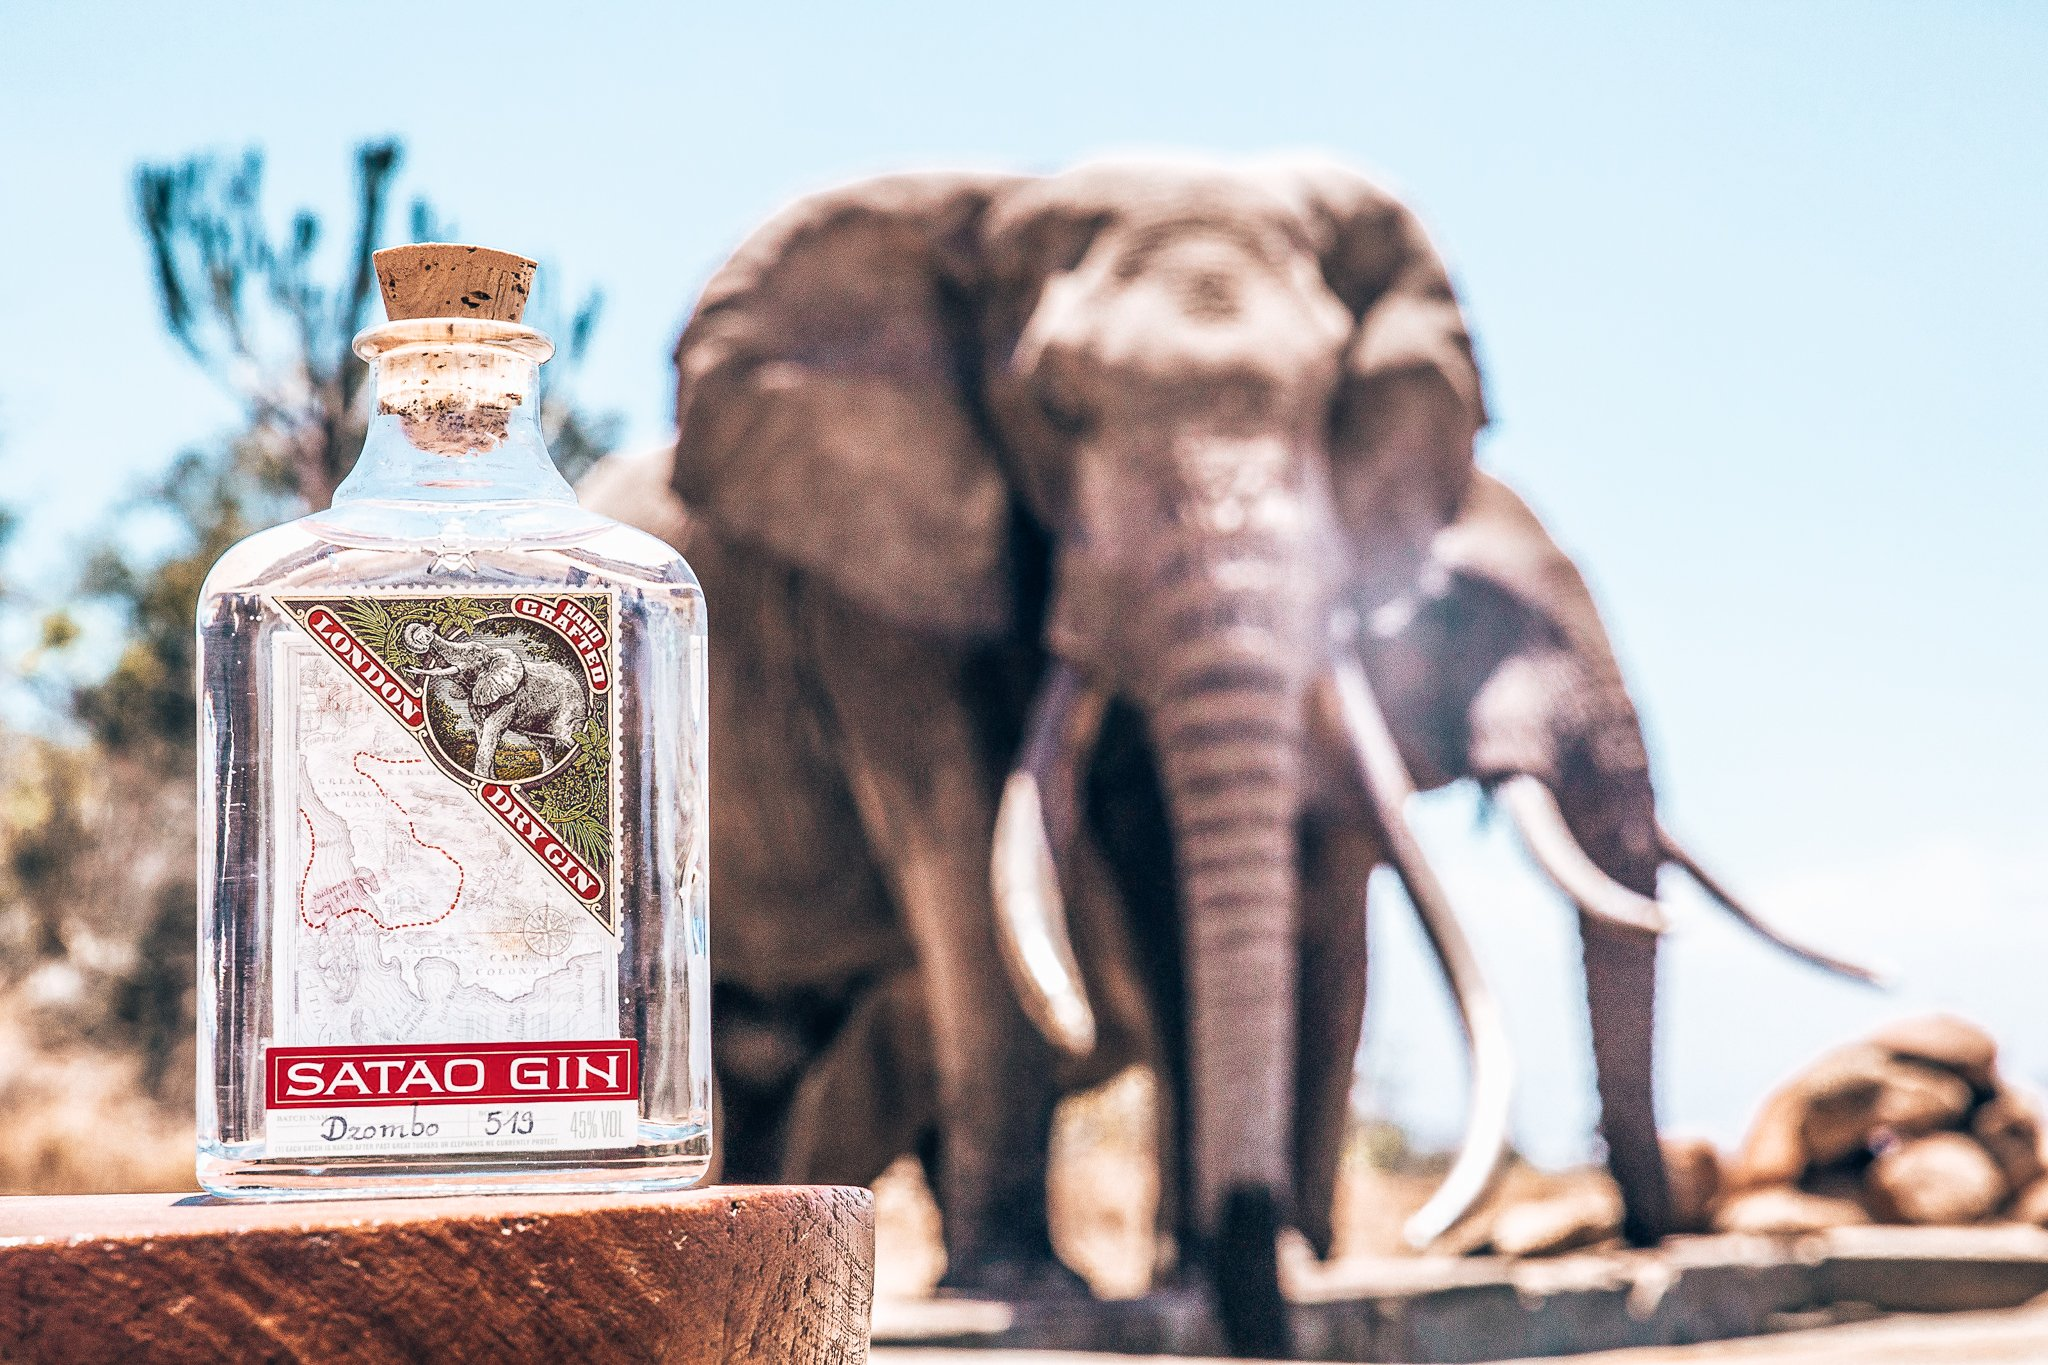 Satao Gin steunt de Afrikaanse olifant, Alles over gin.